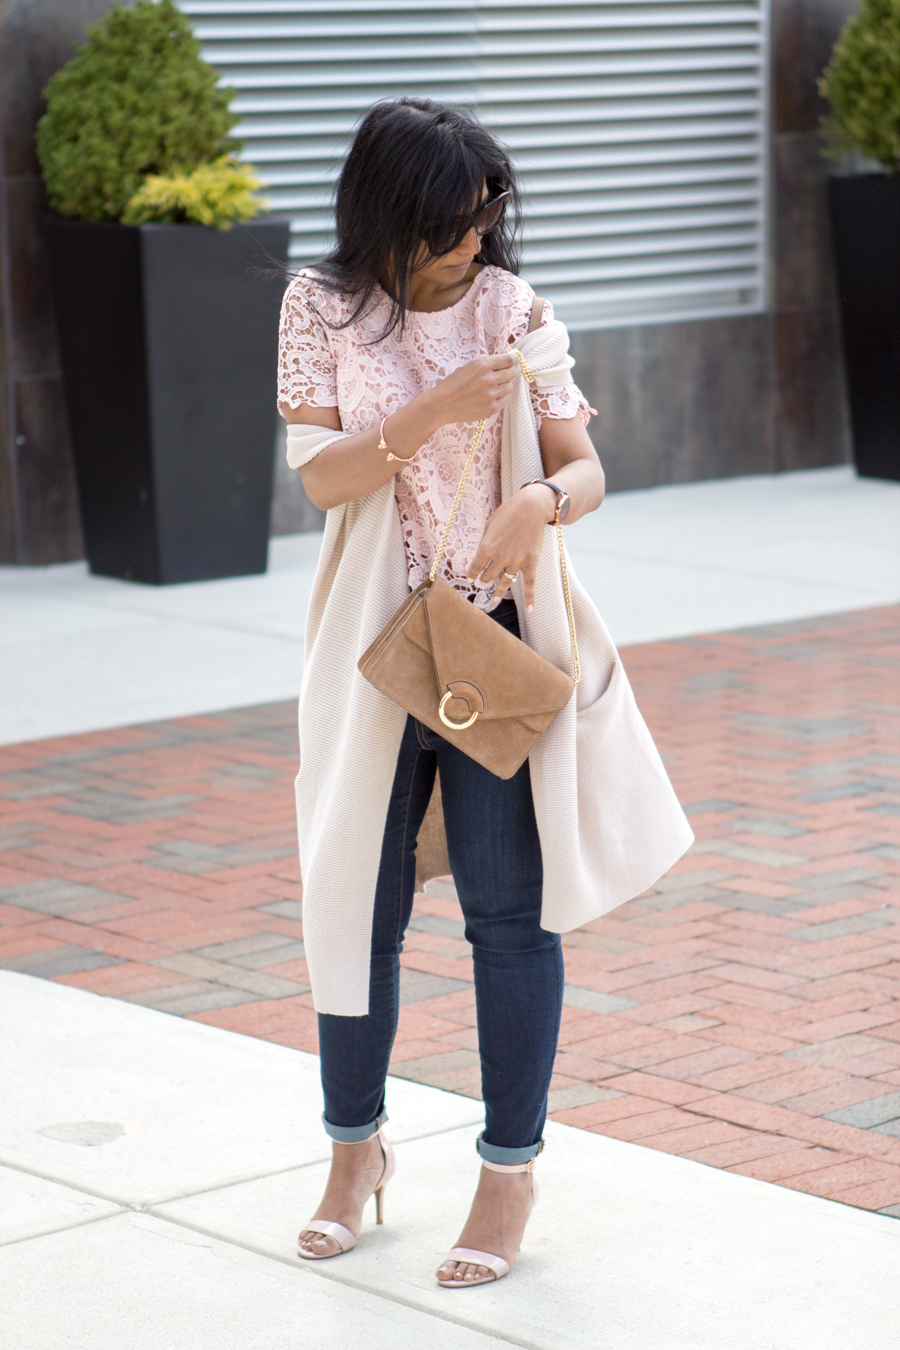 curvy jeans, petite jeans, skinny ankle jeans, spring lookbook, layers, vest, blush lace top, lace blouse, blush sandals, petite fashion, spring style, trendy style